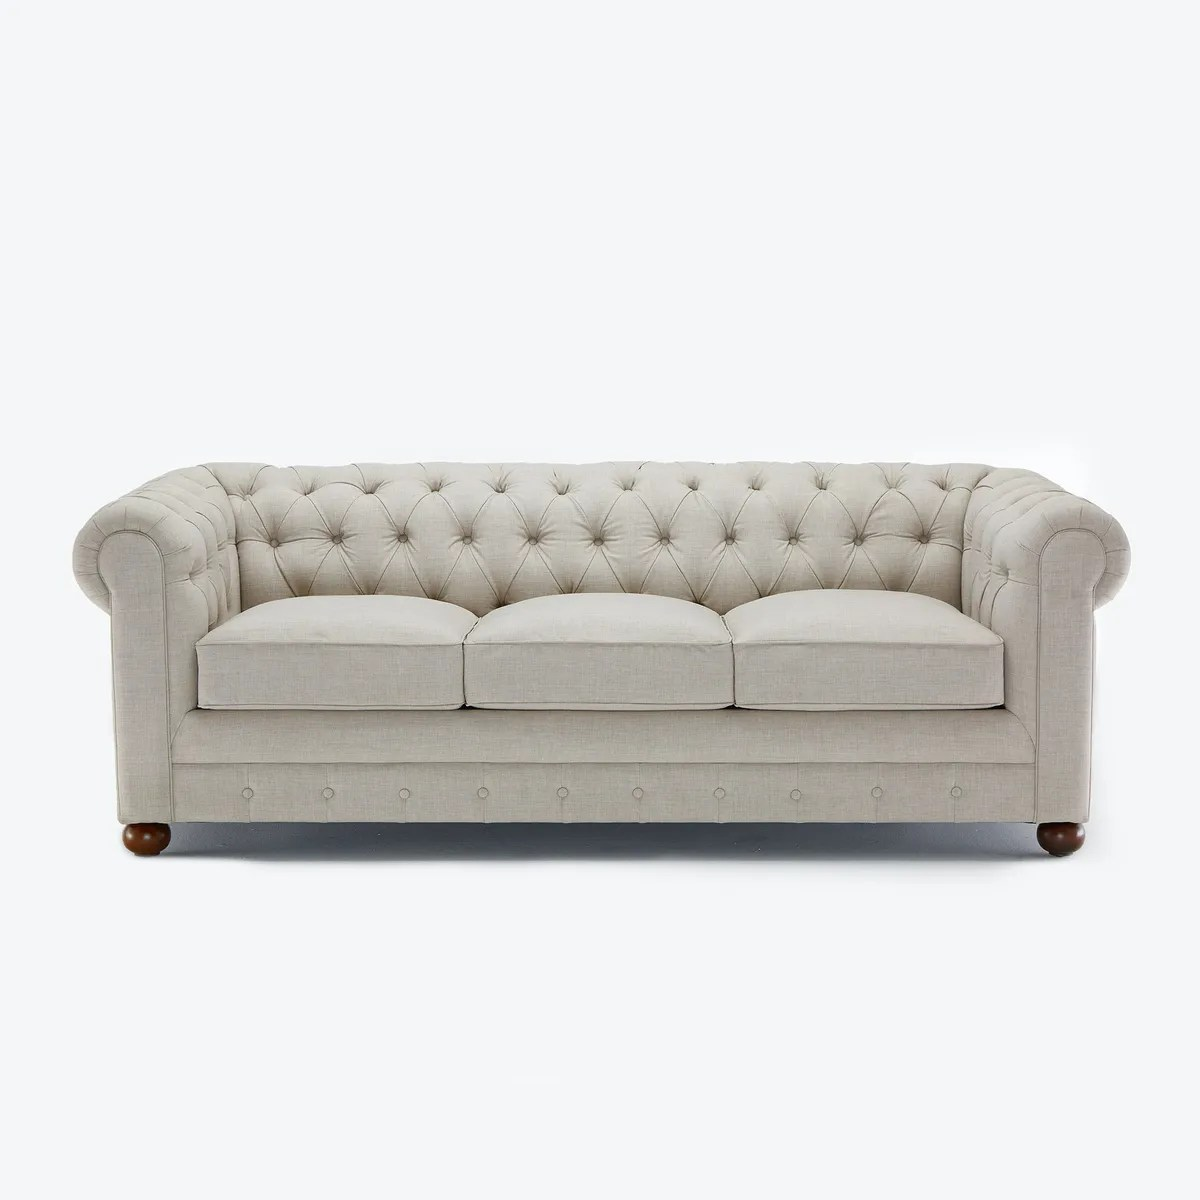 29 Best Sleeper Sofas Sofa Beds And Pullout Couches 2021 The Strategist New York Magazine